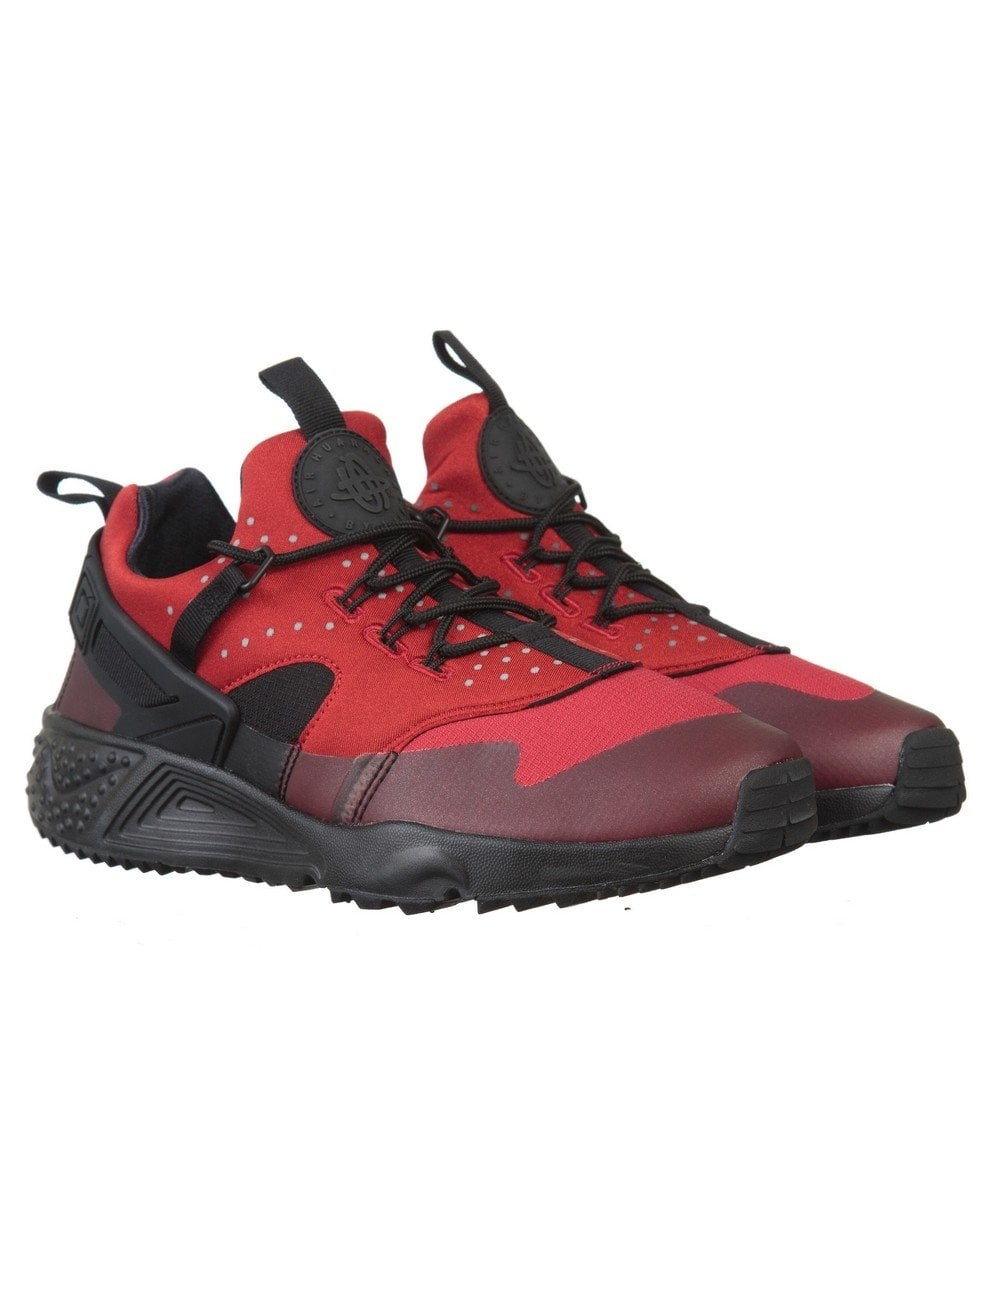 6d4abcd3a087 Nike Air Huarache Utility Shoes - Gym Red Black - Footwear from Fat ...